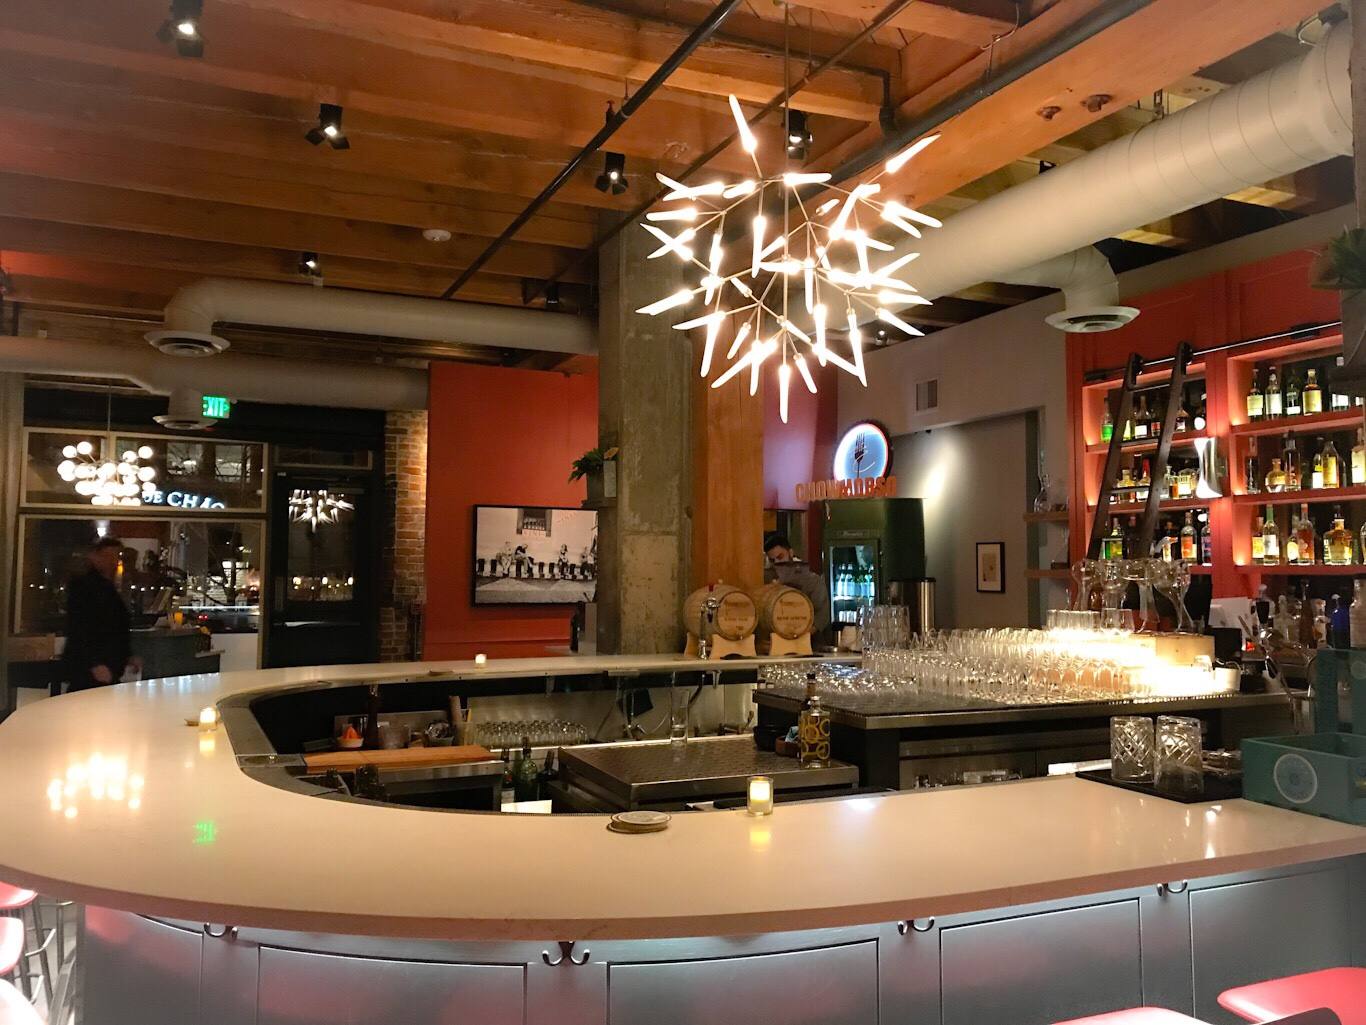 Show stopping chandelier at Chow Morso Osteria's Bar in Denver, CO